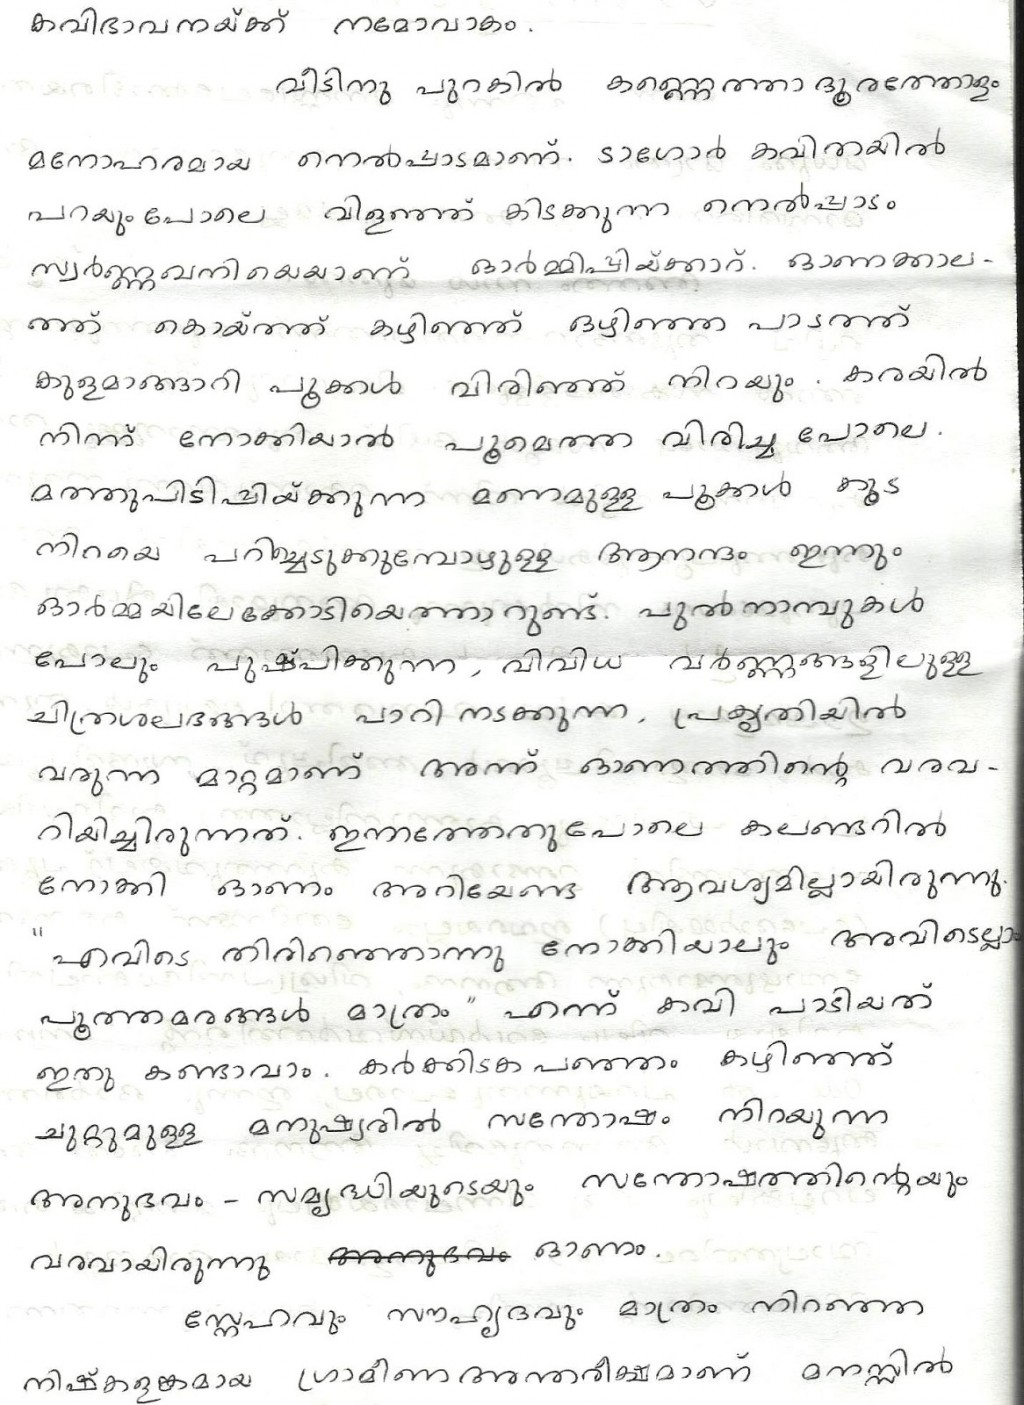 009 Onam2 Essay Example Childhood Unique Memories Conclusion Paragraph In Urdu Large